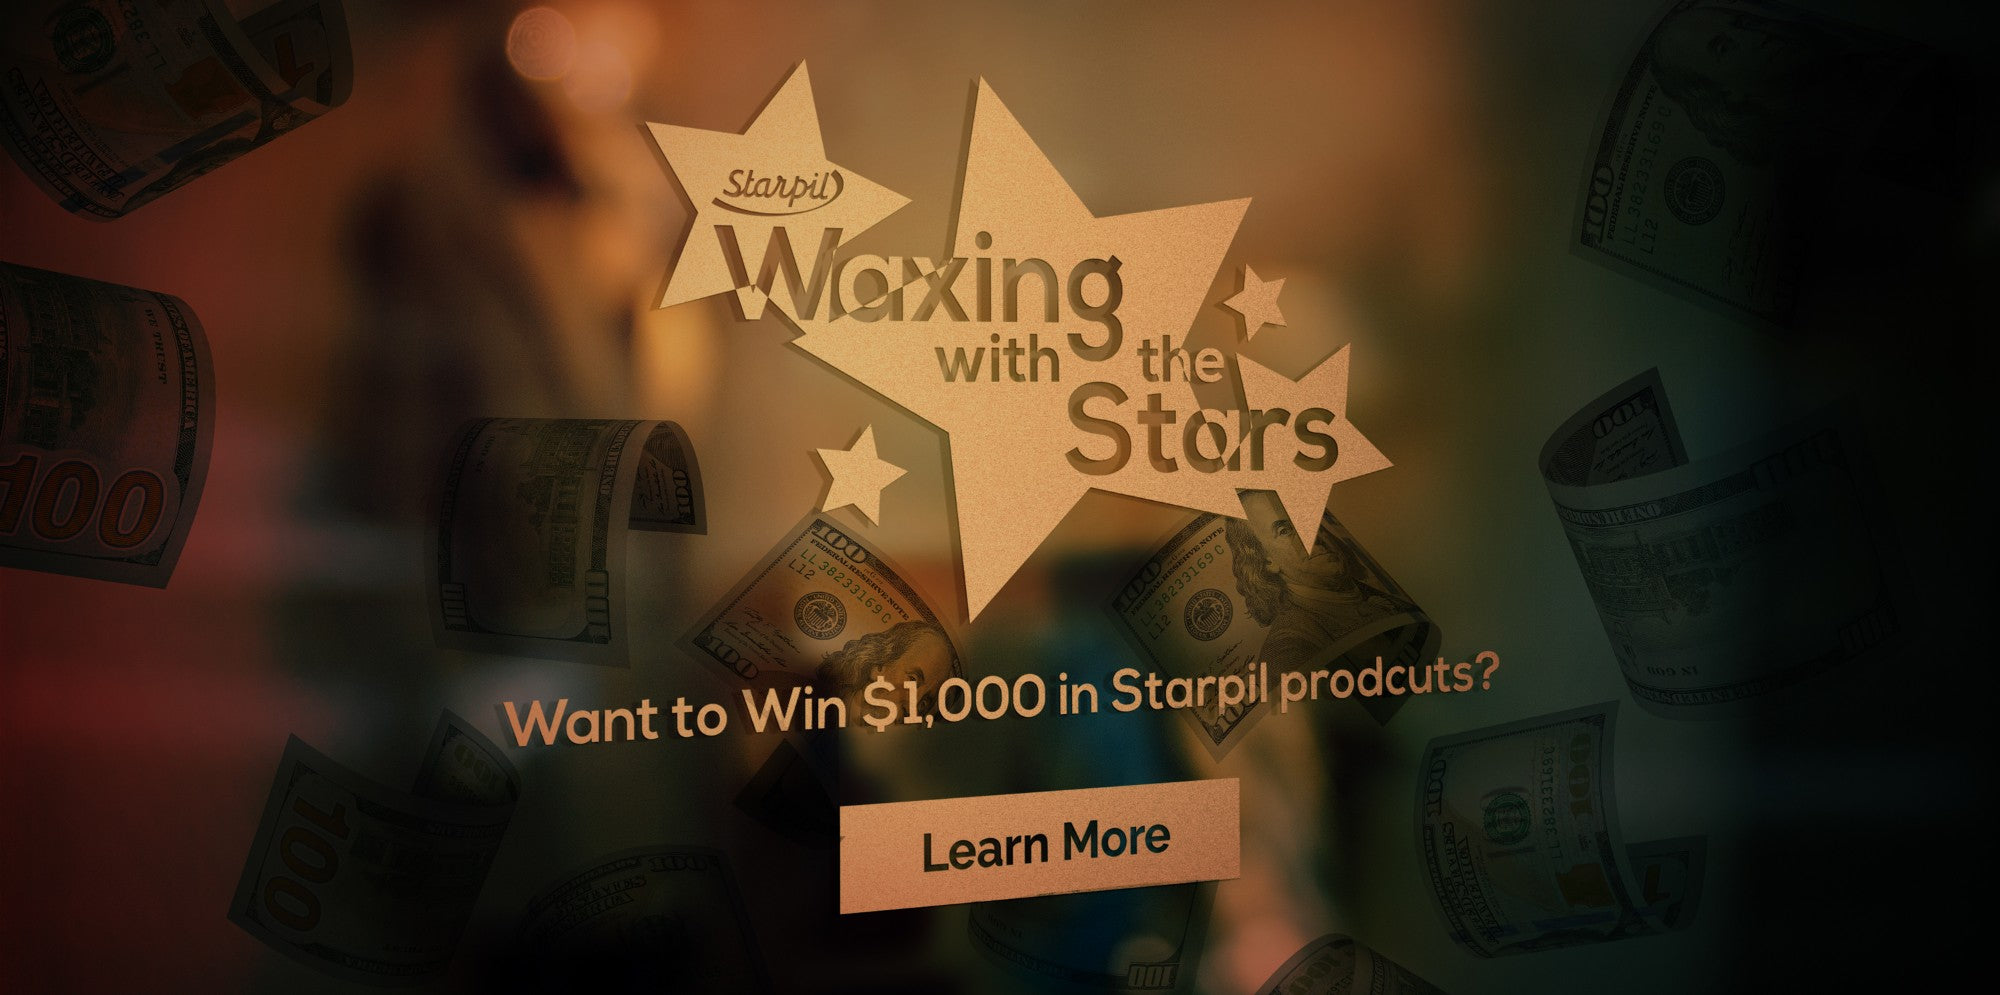 Waxing with the Stars